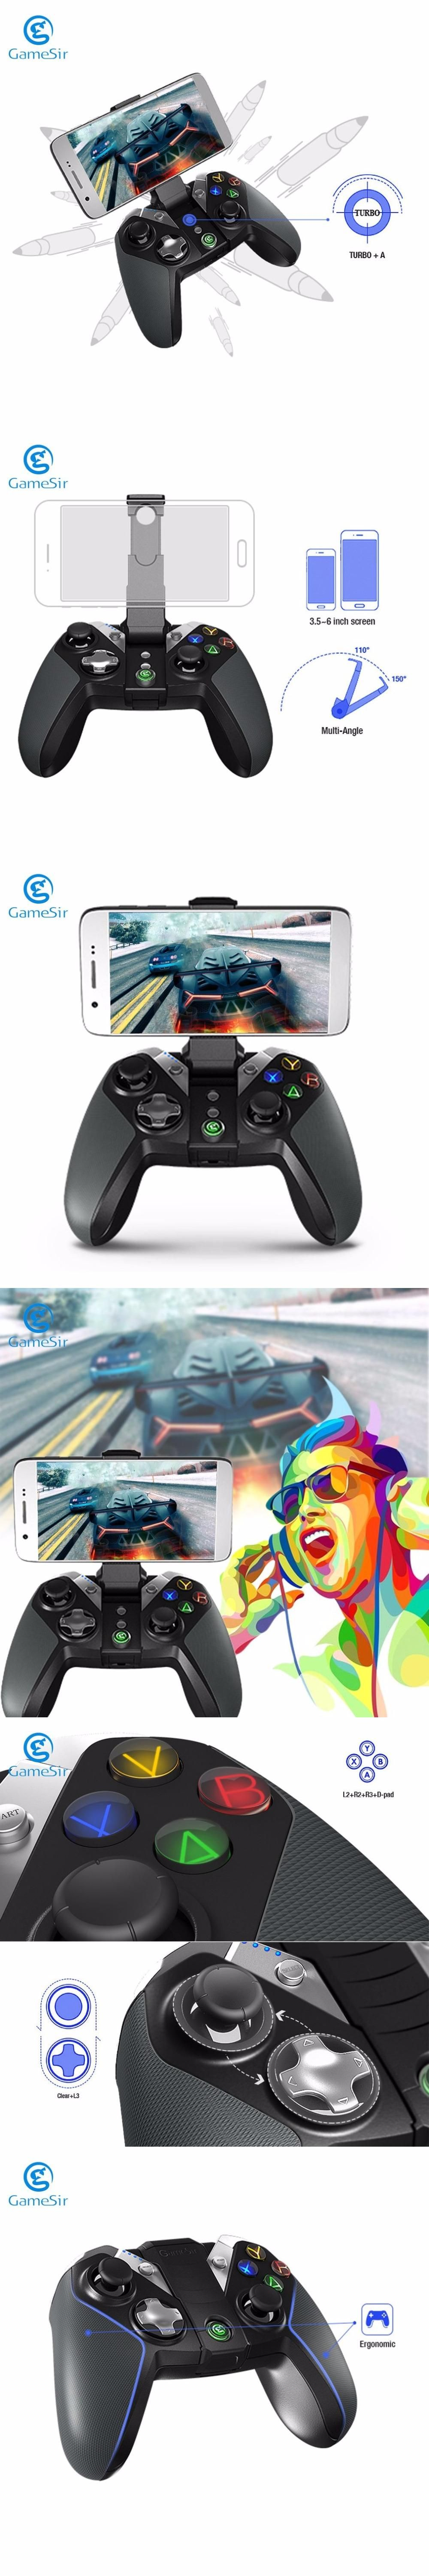 Gamesir G4 Wireless Bluetooth 40 Gamepad Controller For Ps3 Vr Box Smartphone Android Smart Tv Tablet